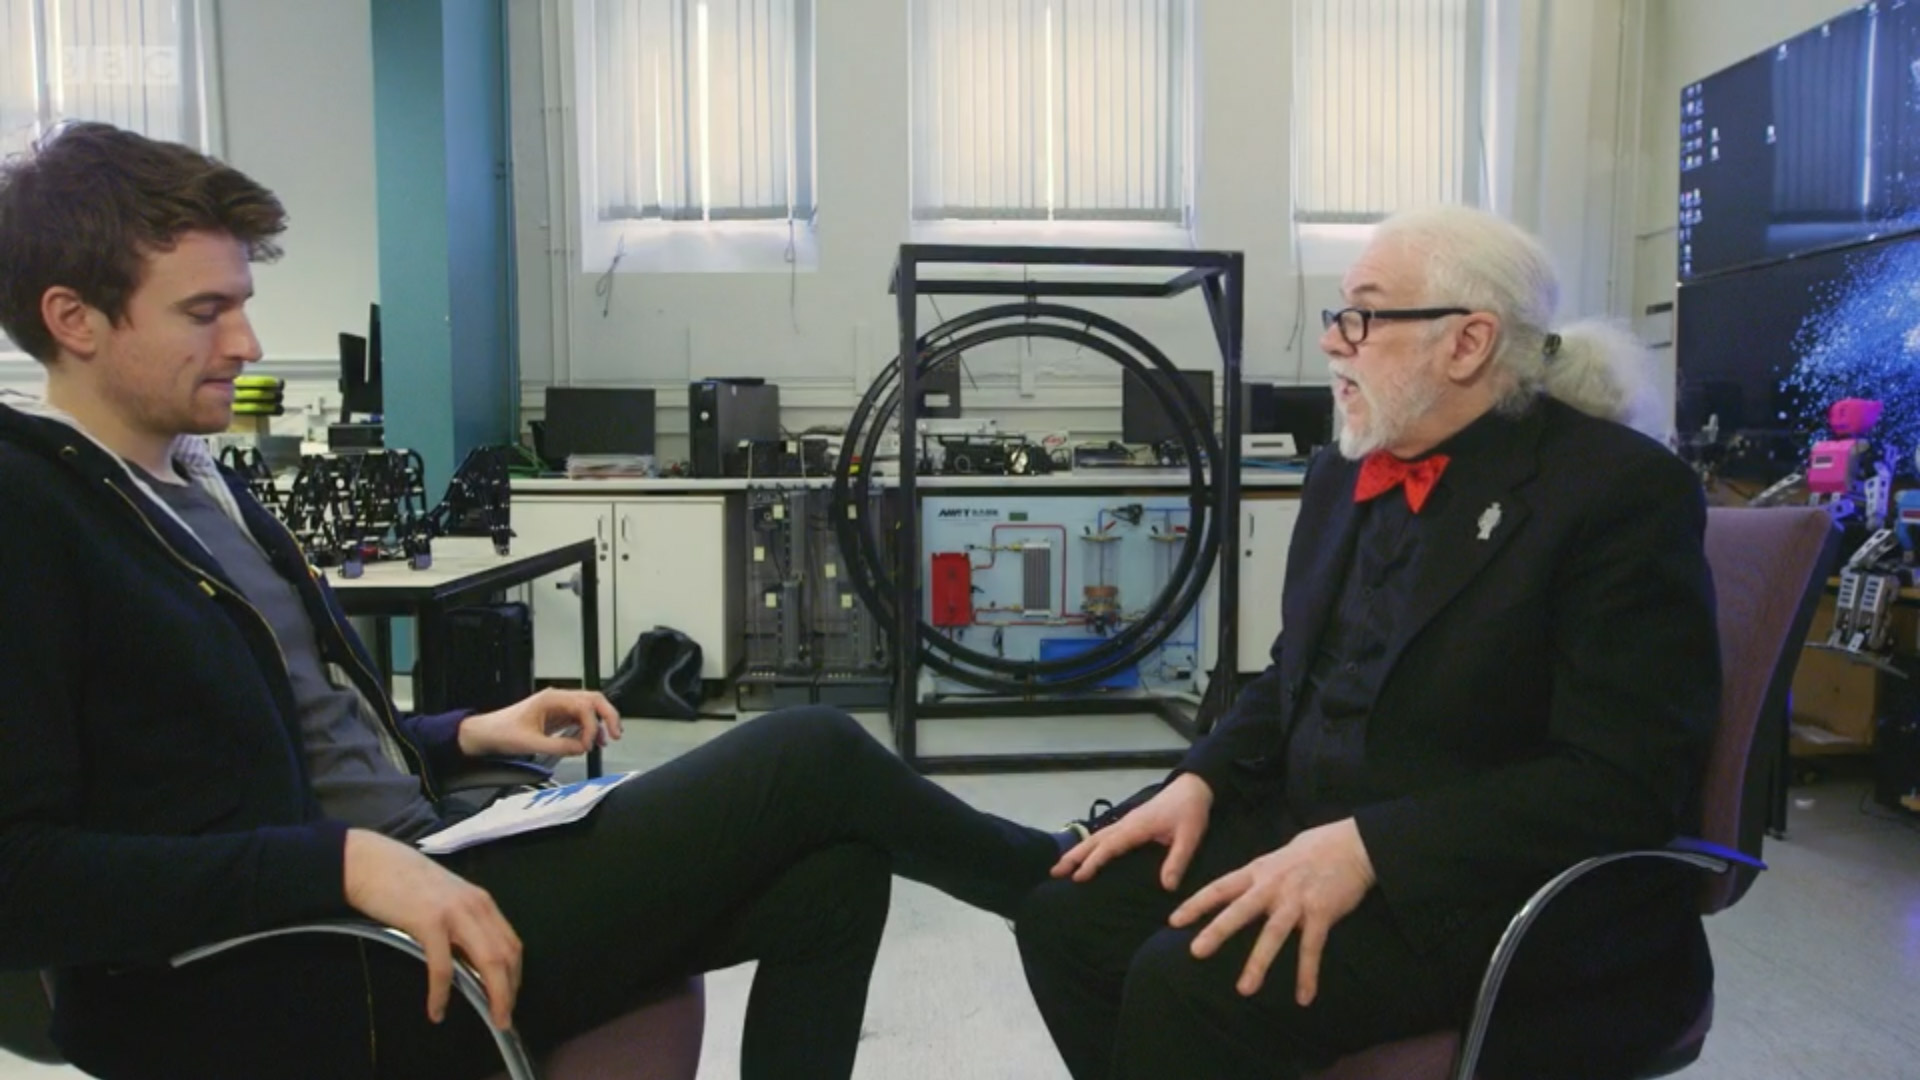 Greg James & Noel Sharkey Discuss creating a Robot Ed Sheeran